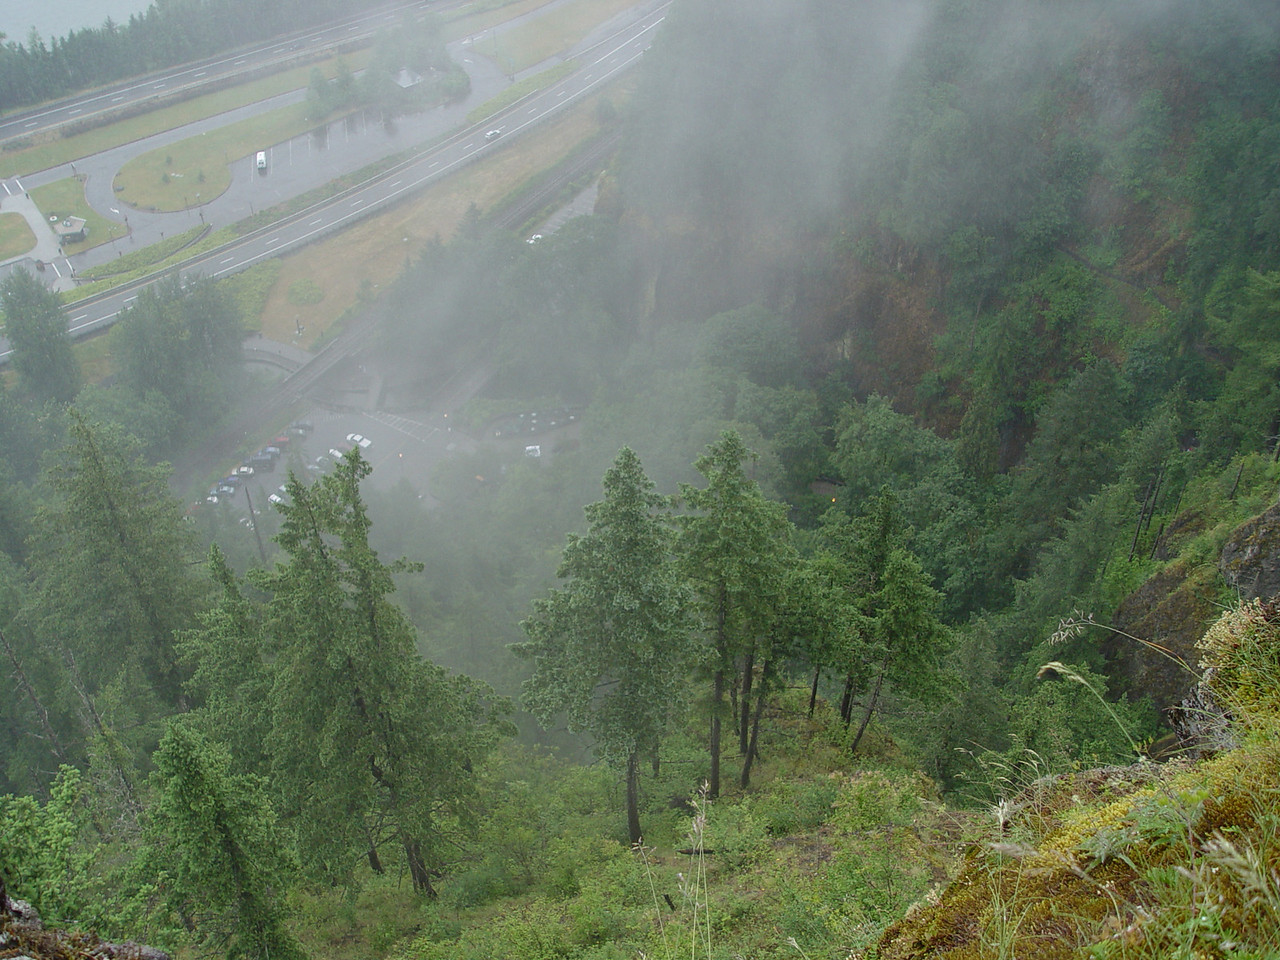 Looking down on the Multnomah Falls parking area.